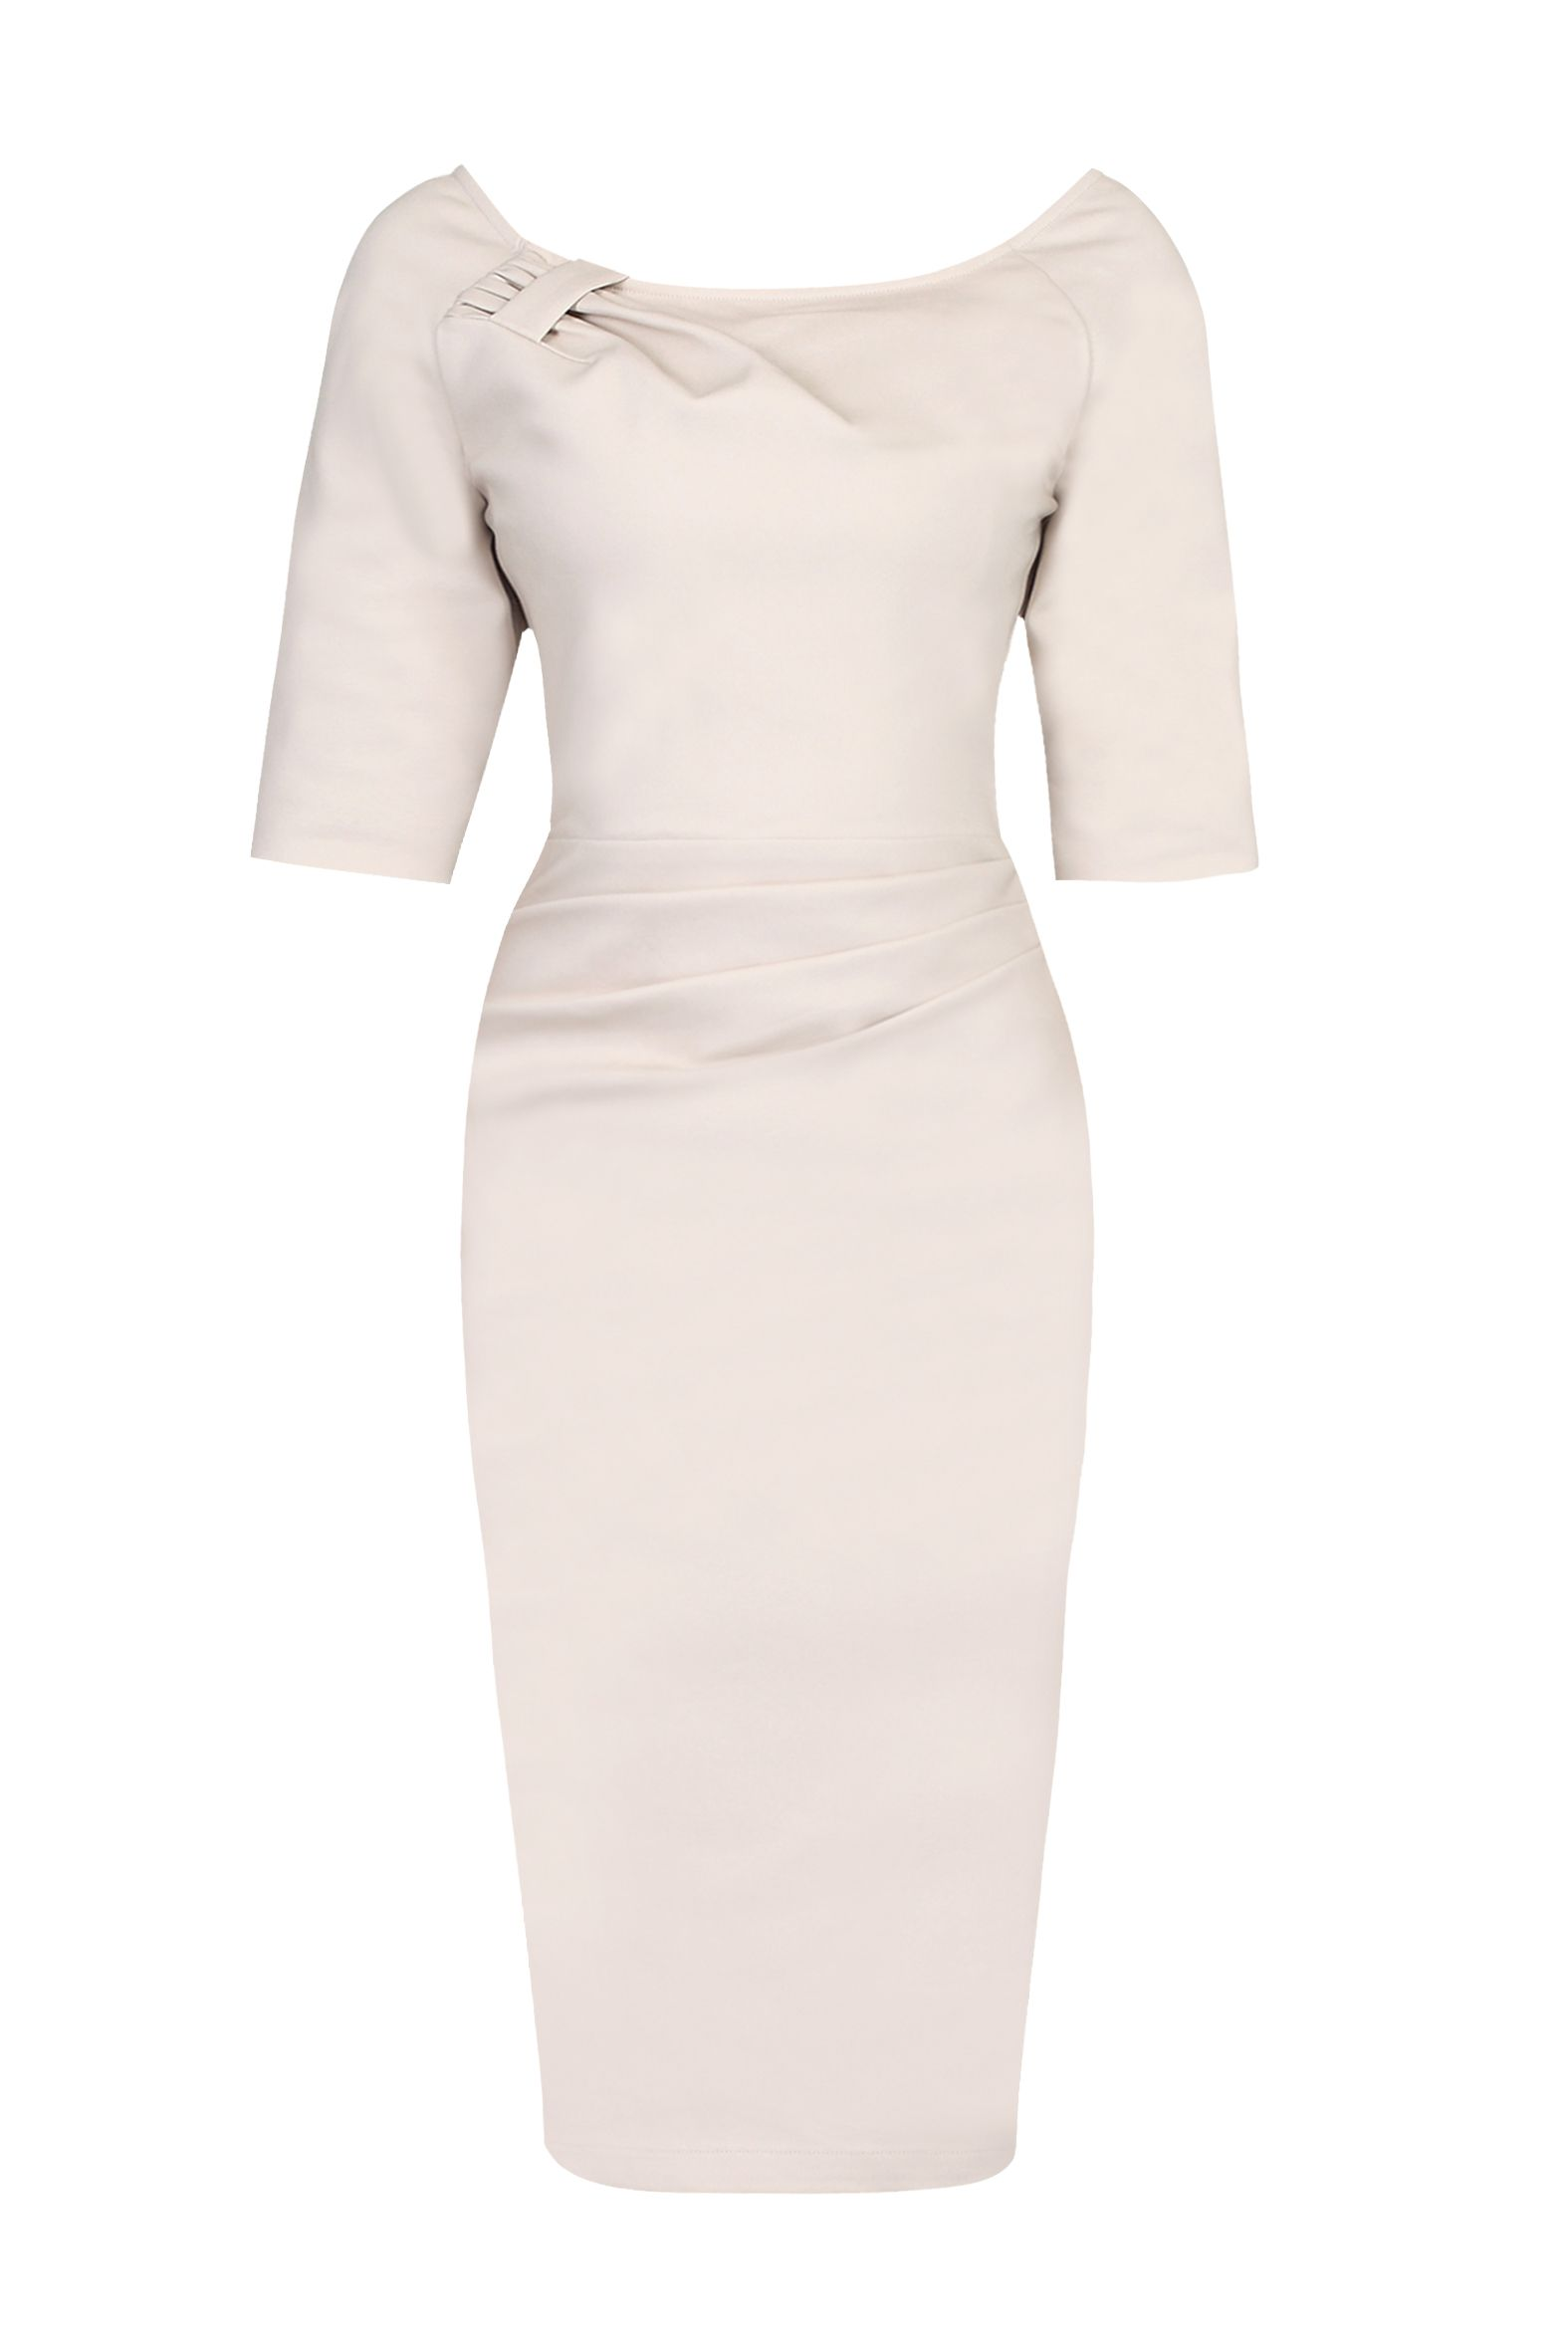 Jolie Moi 1/2 Sleeve Ruched Wiggle Dress, White